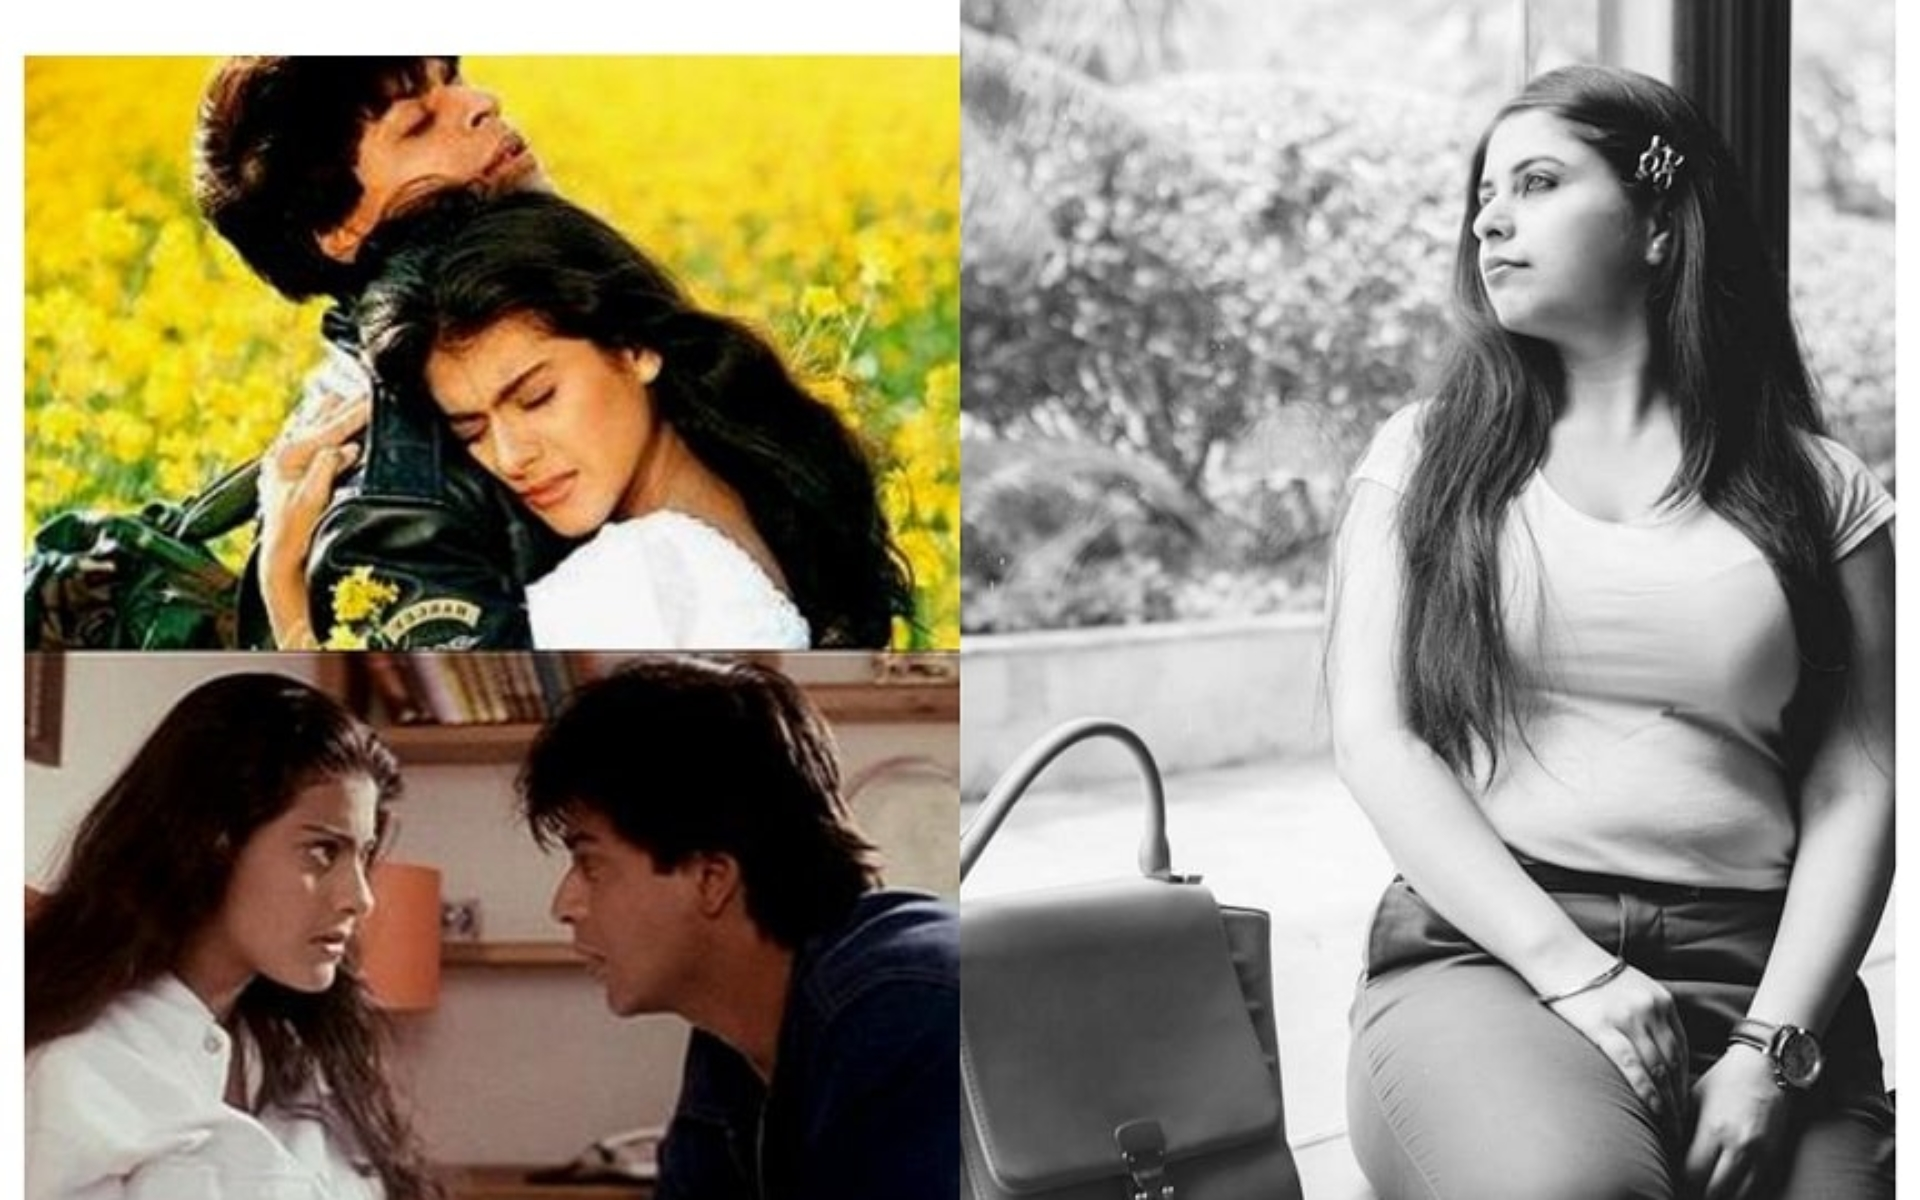 Men Aren't Just From Mars: Why DDLJ-Like Love, Marriage Hasn't Happened For Me & I Still Wait